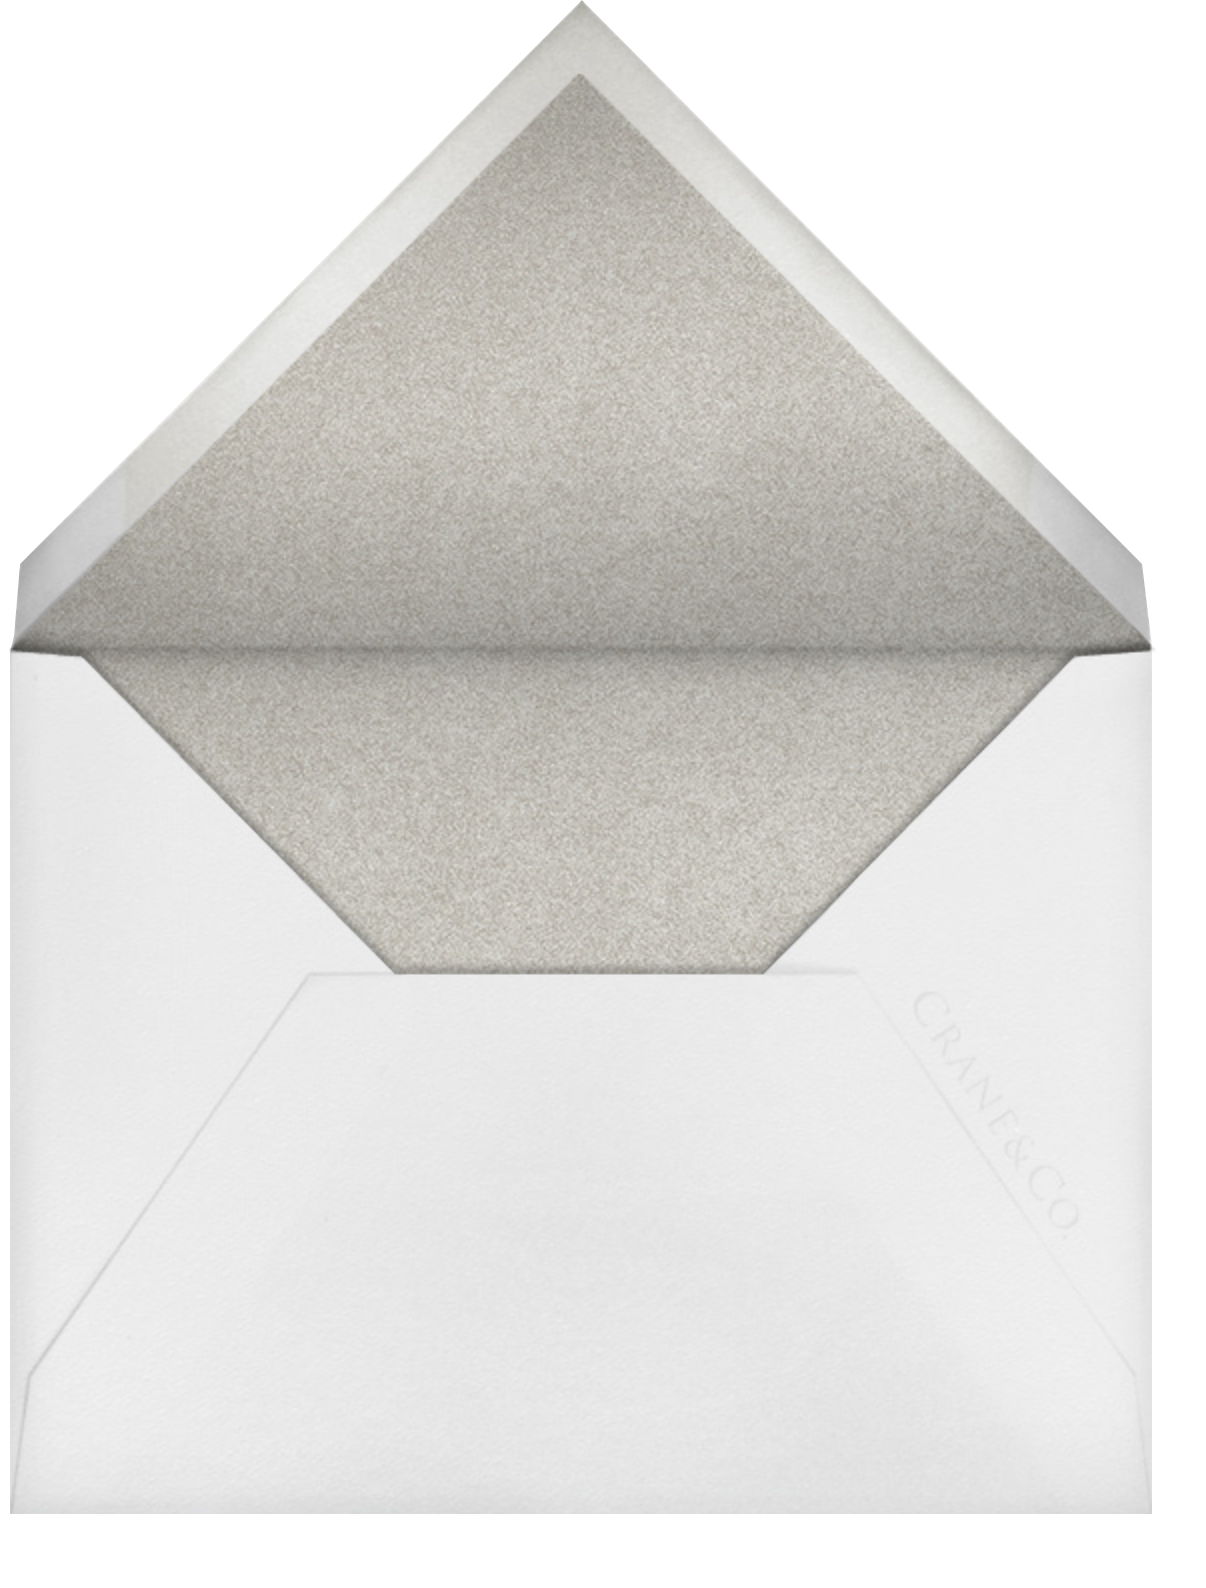 Spindle (Save the Date) - Platinum - Vera Wang - Save the date - envelope back